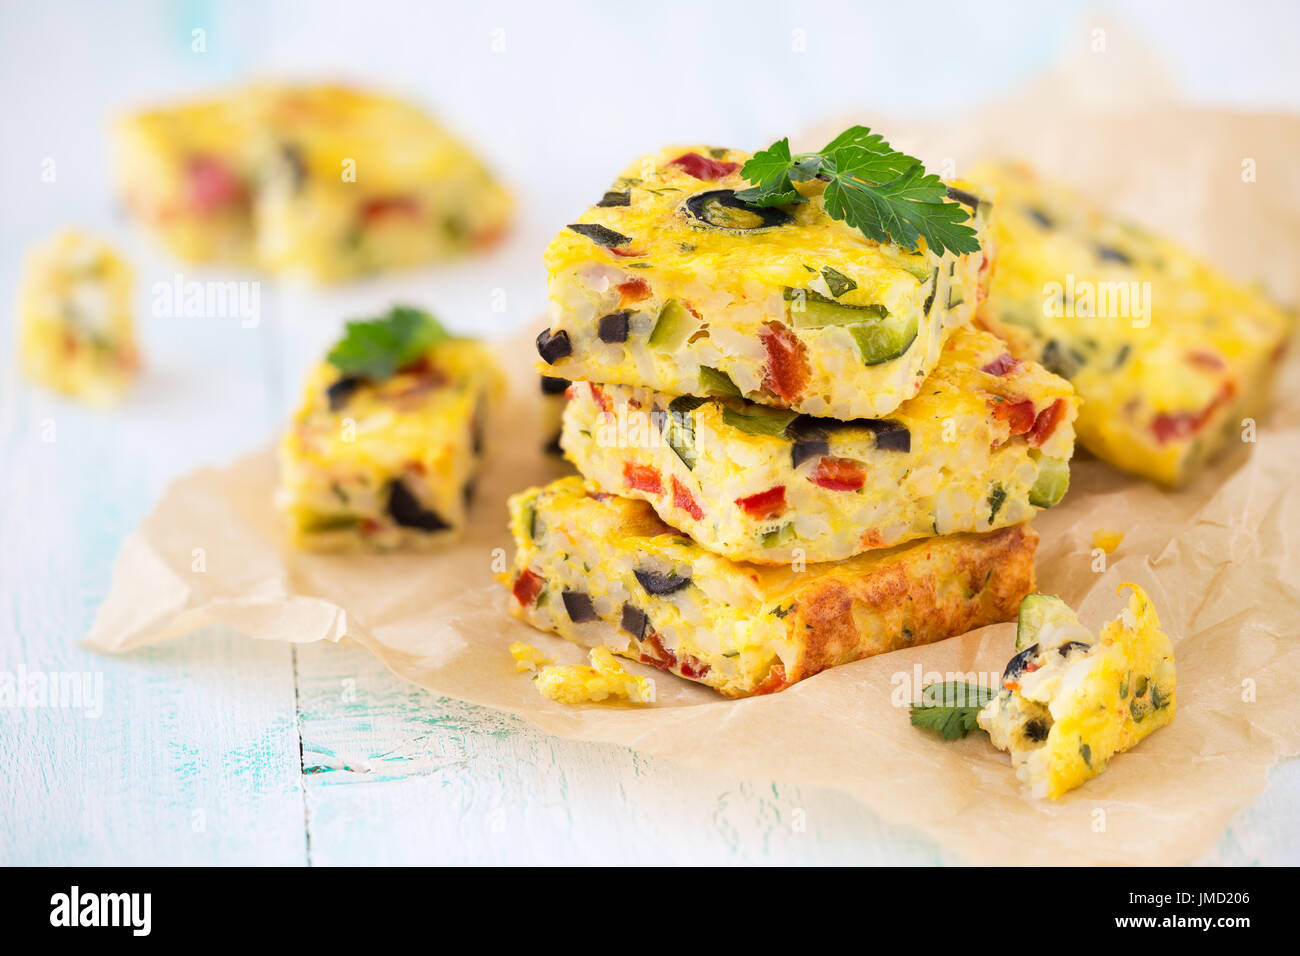 Homemade vegetarian rice frittata with zucchini, bell pepper and olives - Stock Image